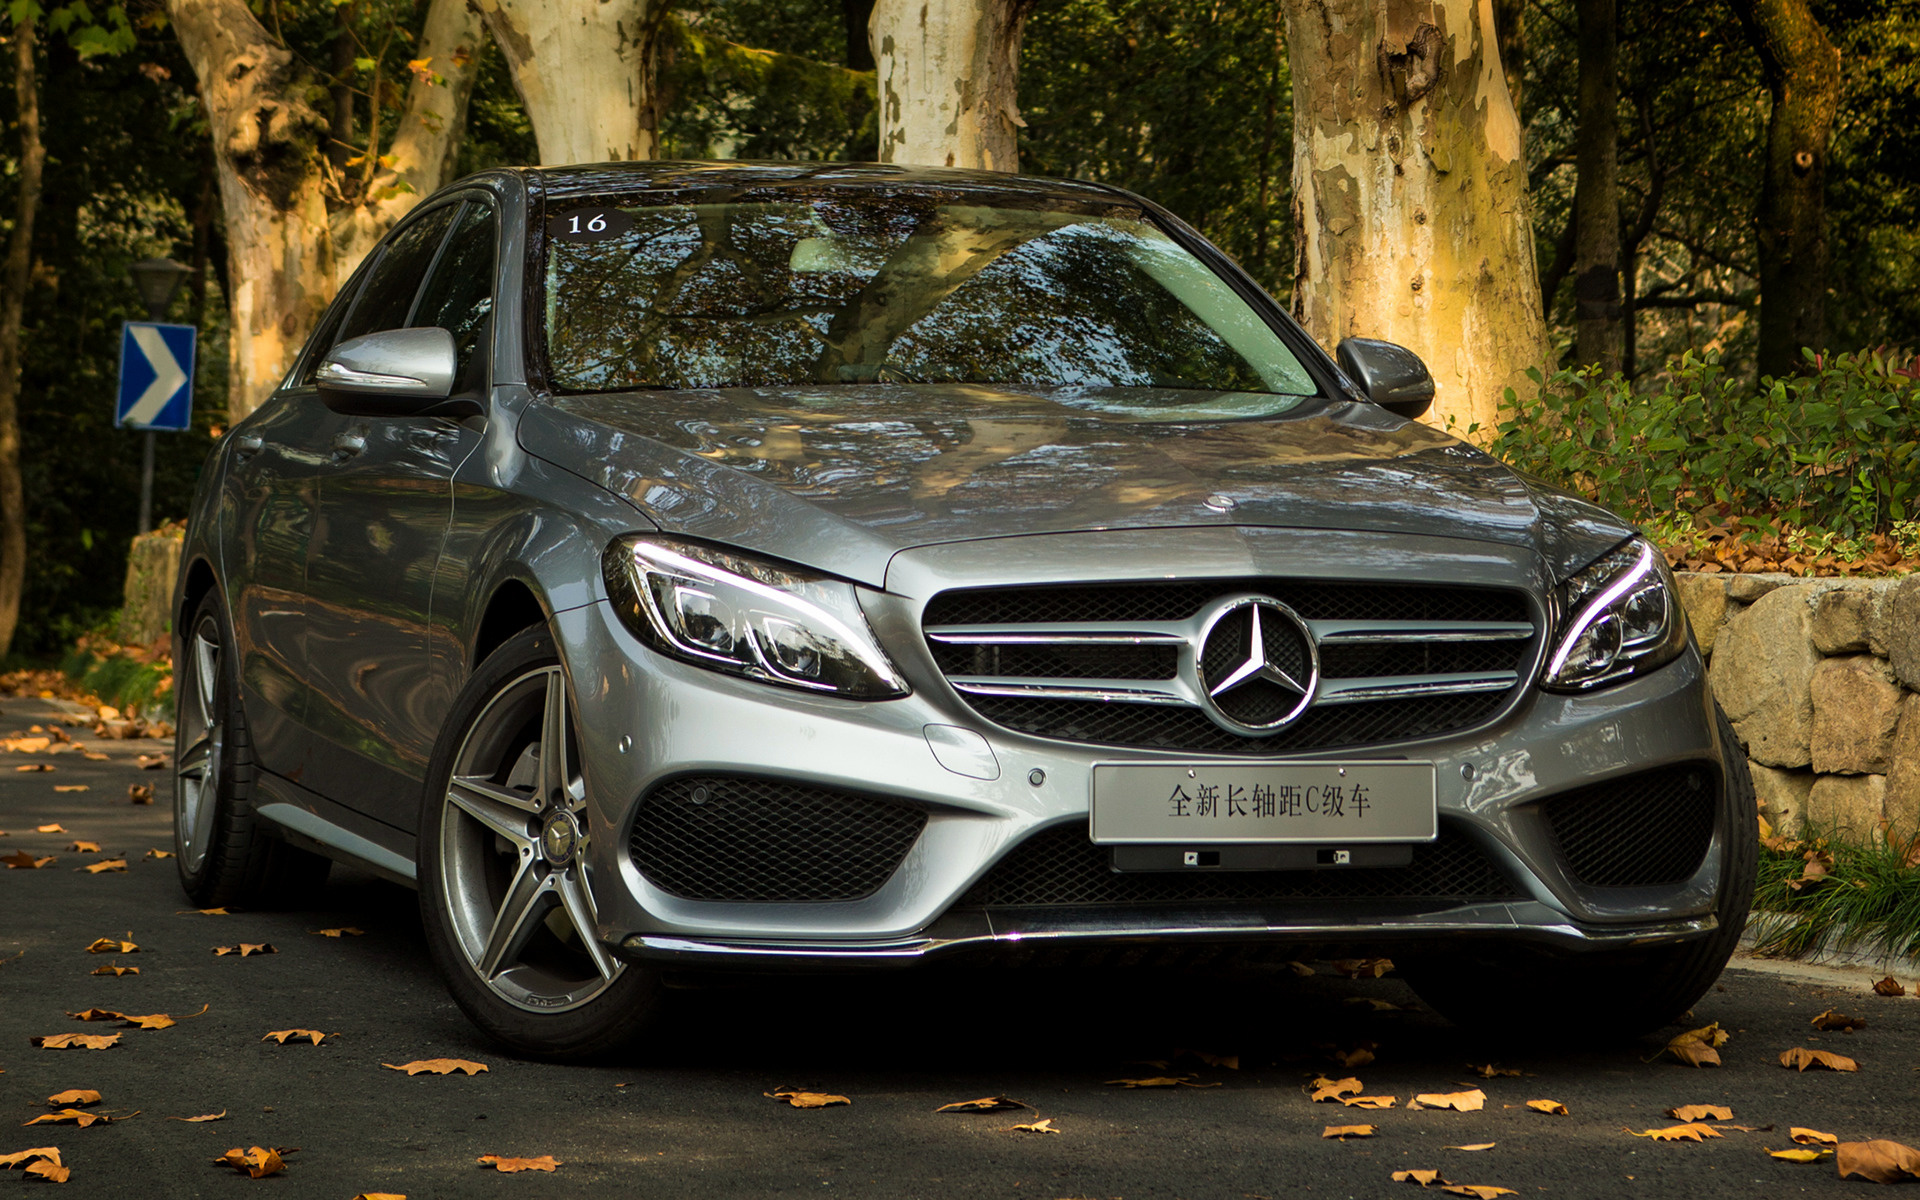 Mercedes-Benz C-Class AMG Styling [Long] (2014) CN Wallpapers and HD Images - Car Pixel